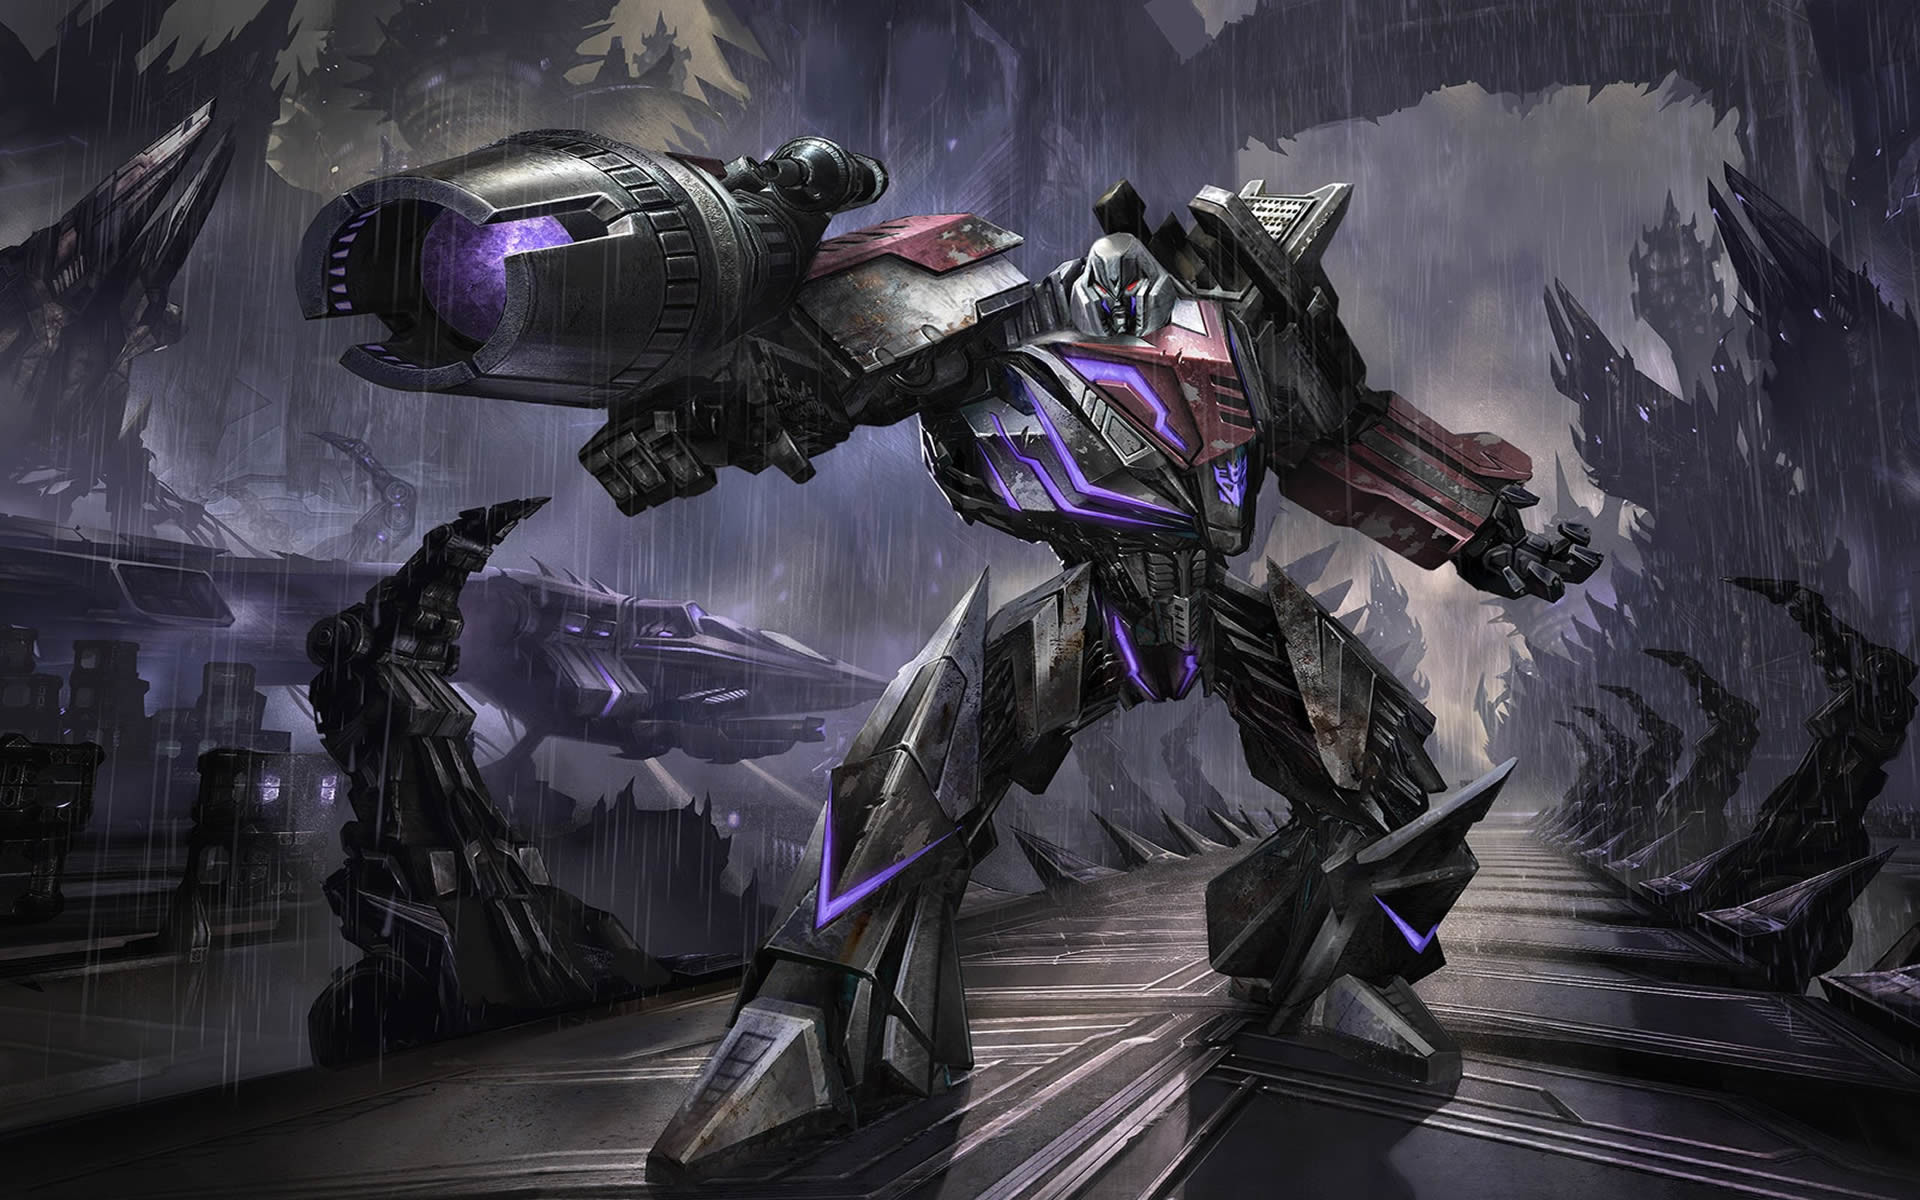 Transformers Fall Of Cybertron Hd Wallpapers 1080p Transformers Decepticons Wallpaper 183 ① Wallpapertag